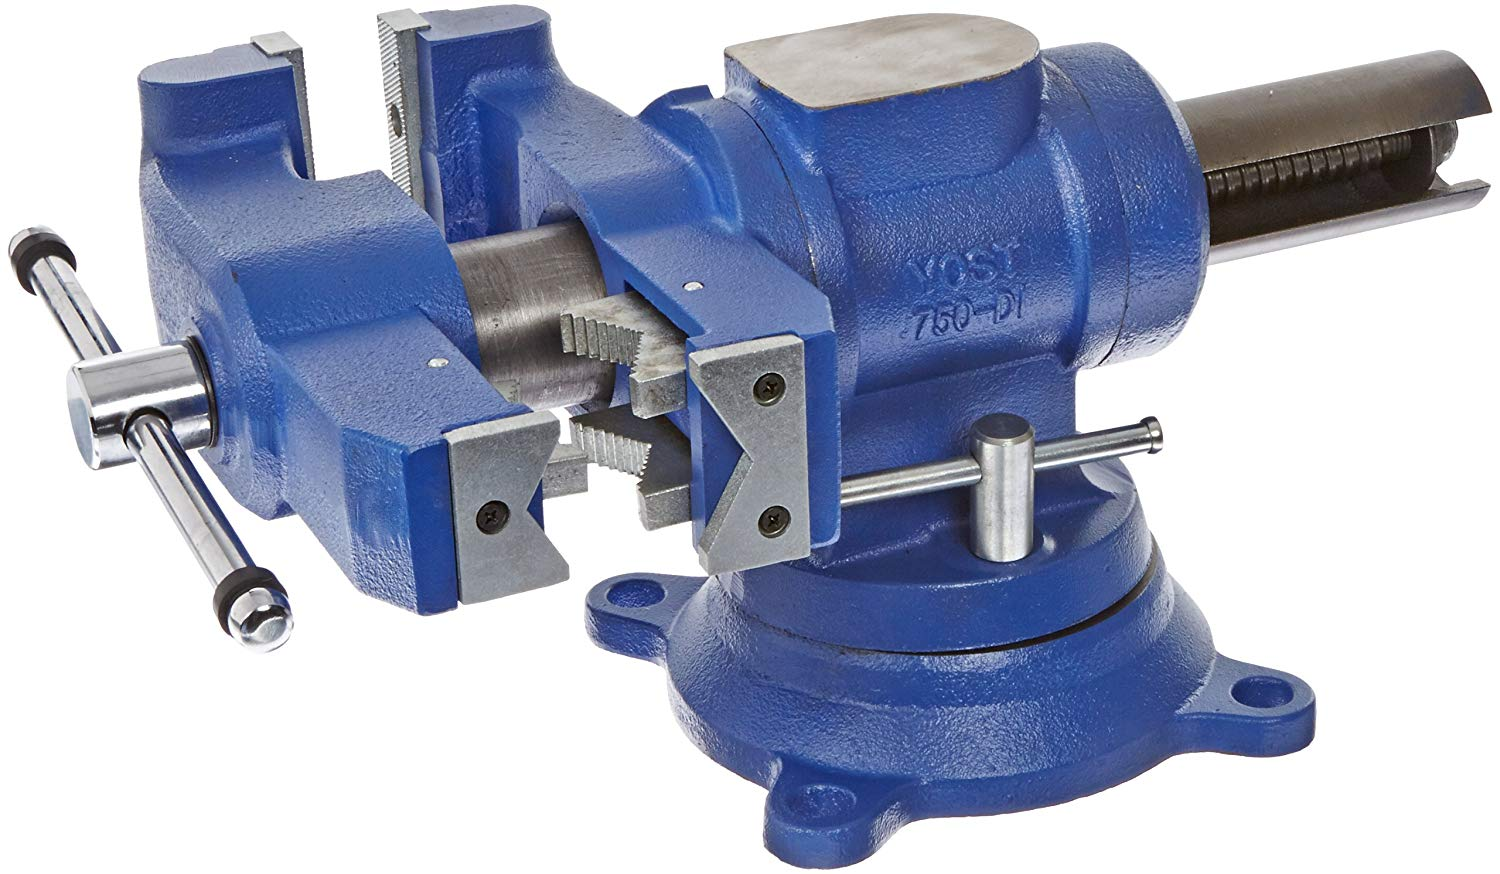 best bench vise - Yost 750-DI